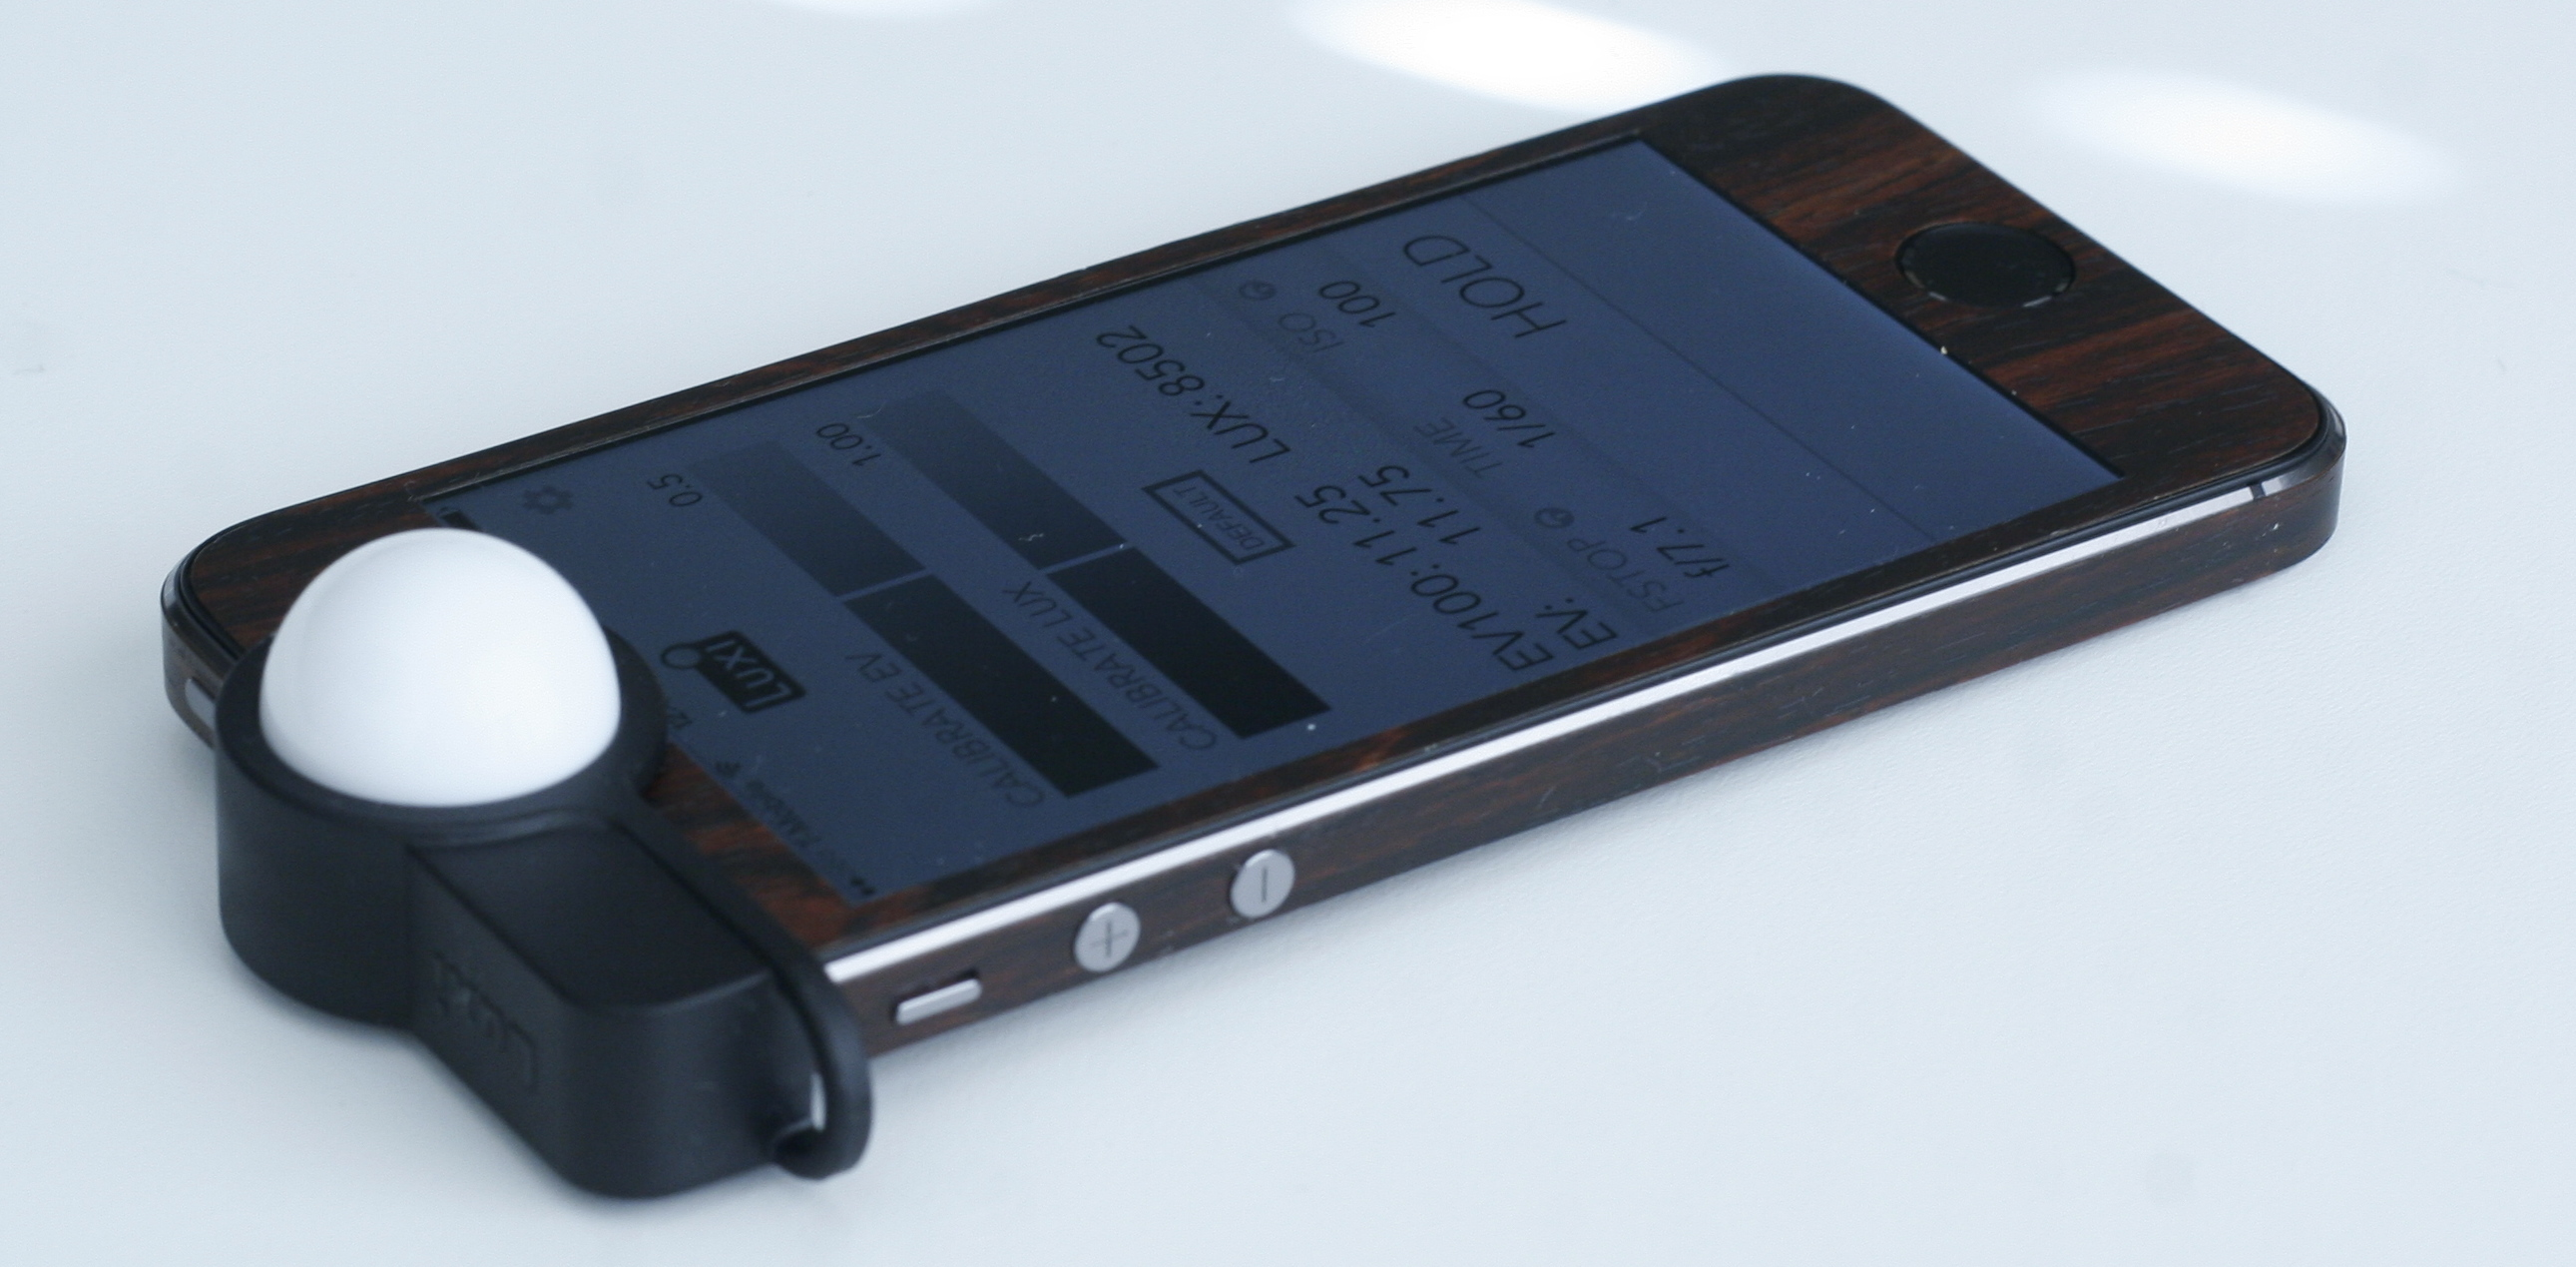 Luxi turns your iPhone into an incident light meter